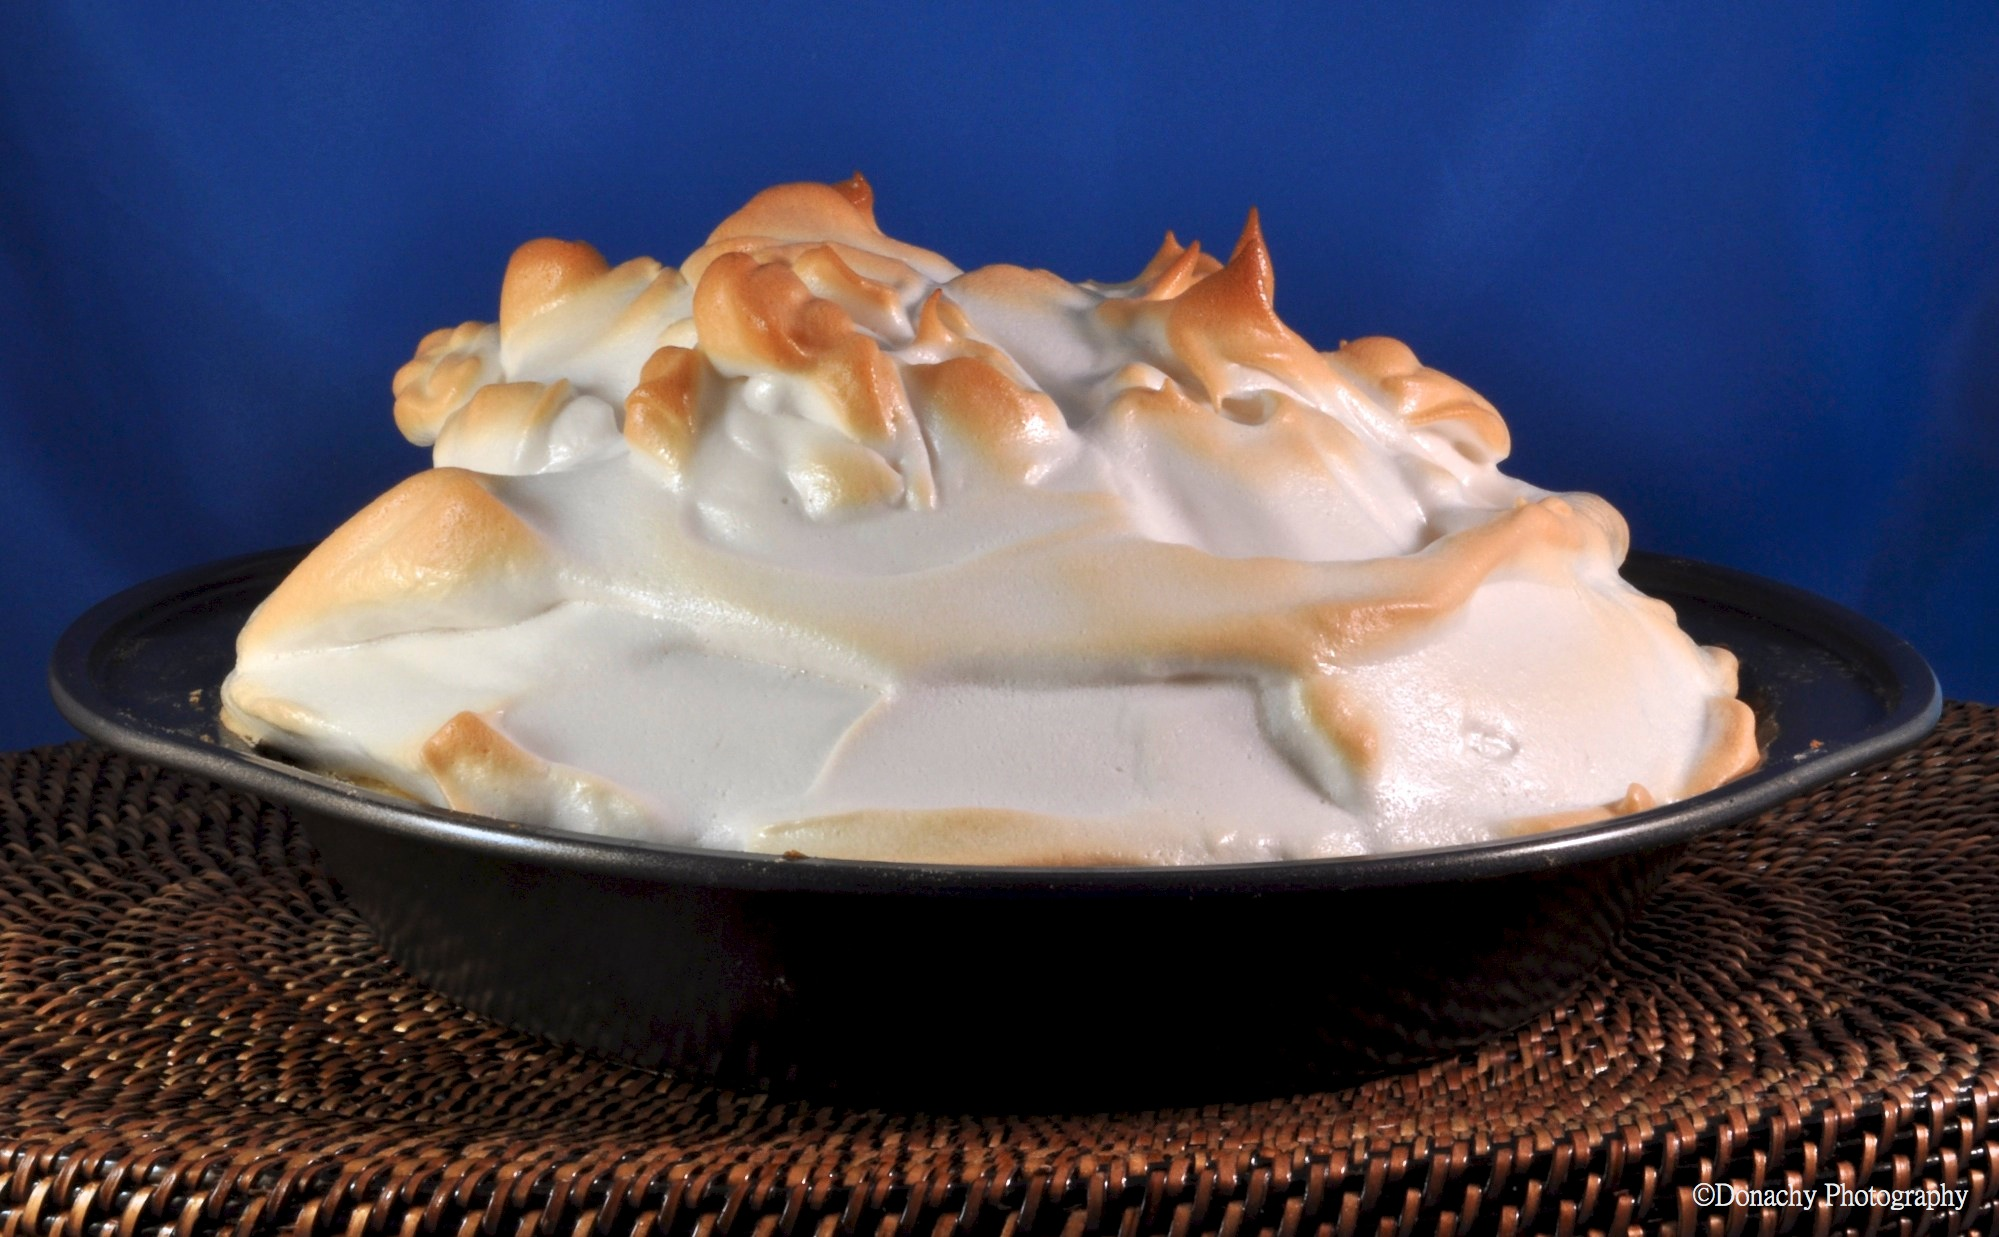 Chocolate Orange Meringue Pie | CutterLight